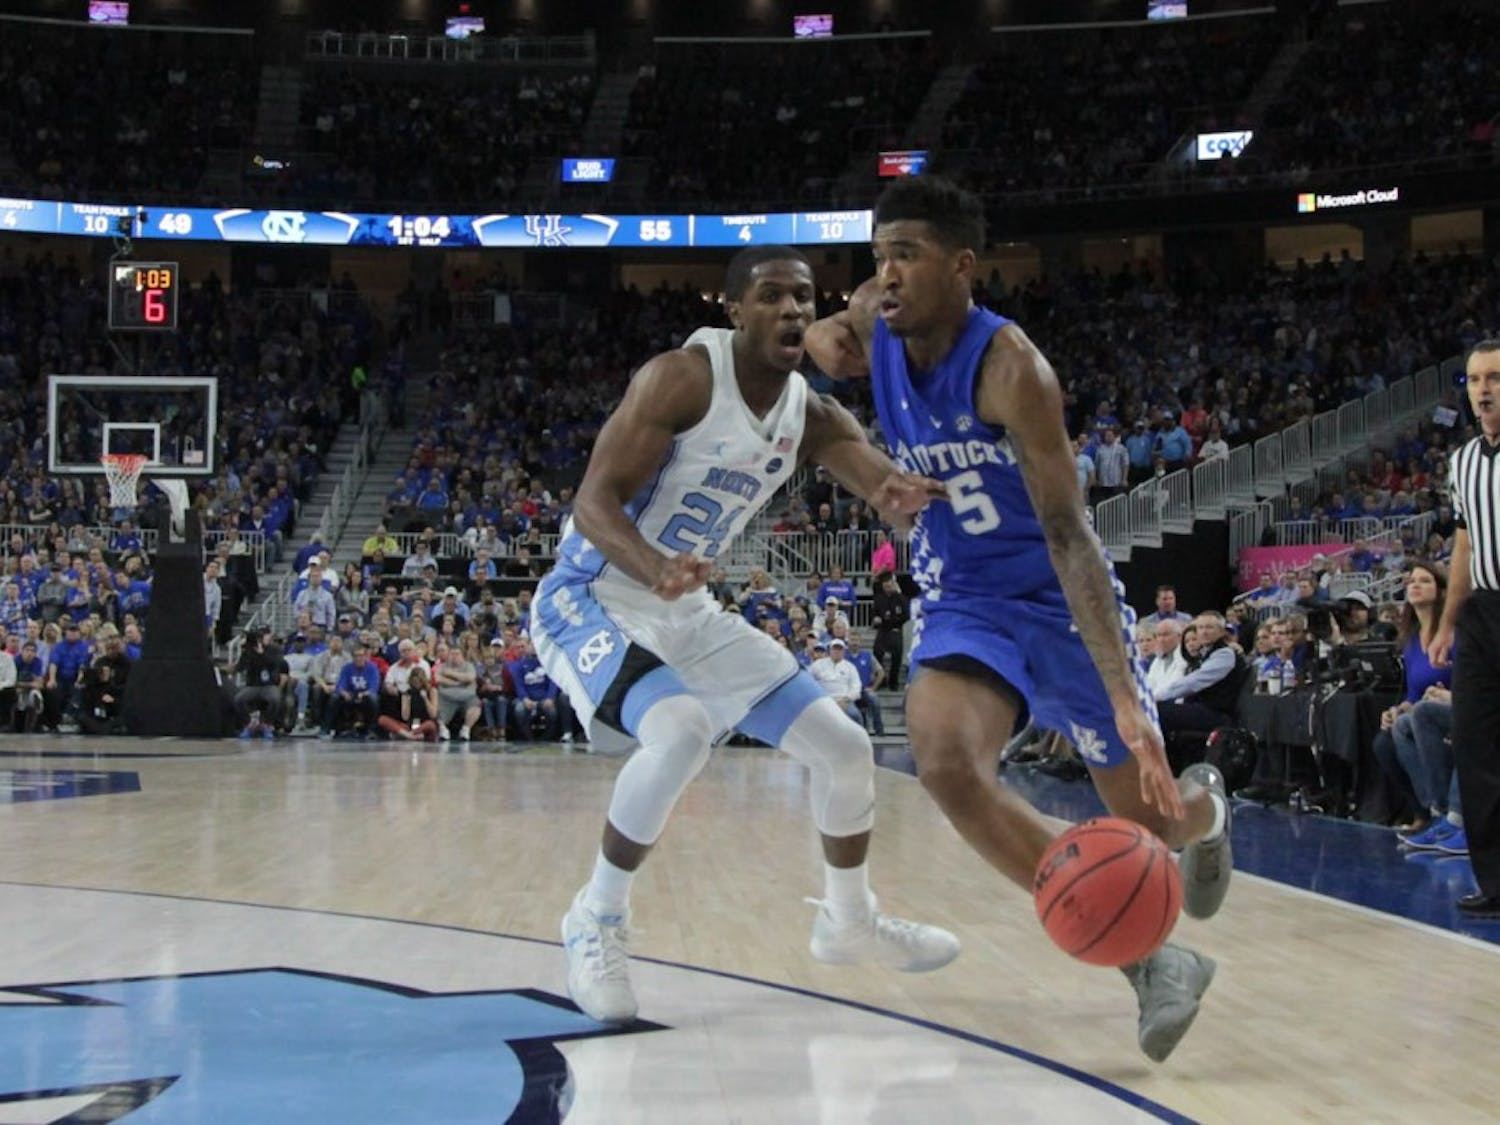 UNC guard Kenny Williams (24) defends Kentucky freshman guard Malik Monk (5) as he drives to the basket at the CBS Sports Classic on Saturday.